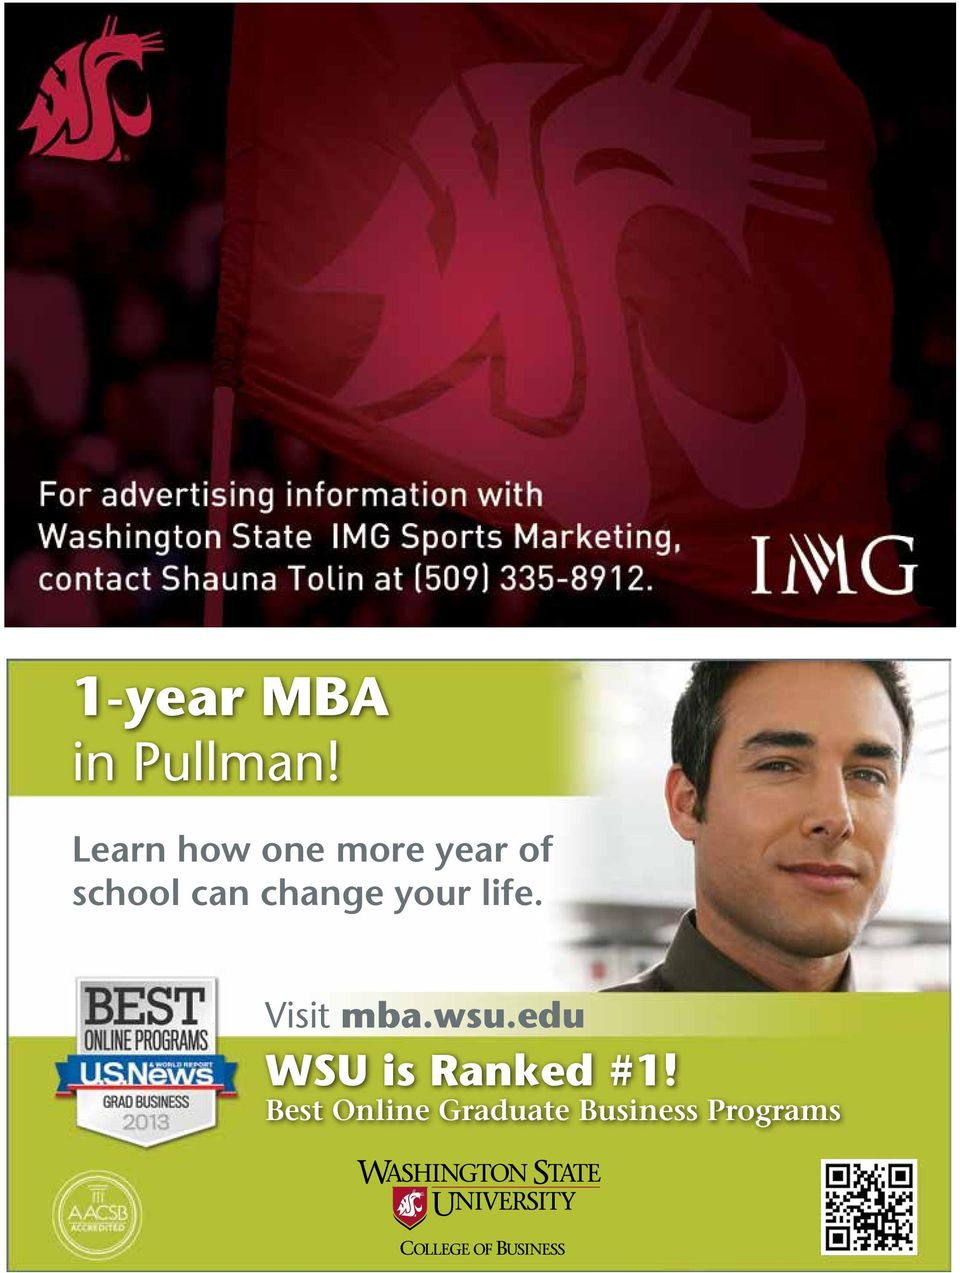 change your life. Visit mba.wsu.